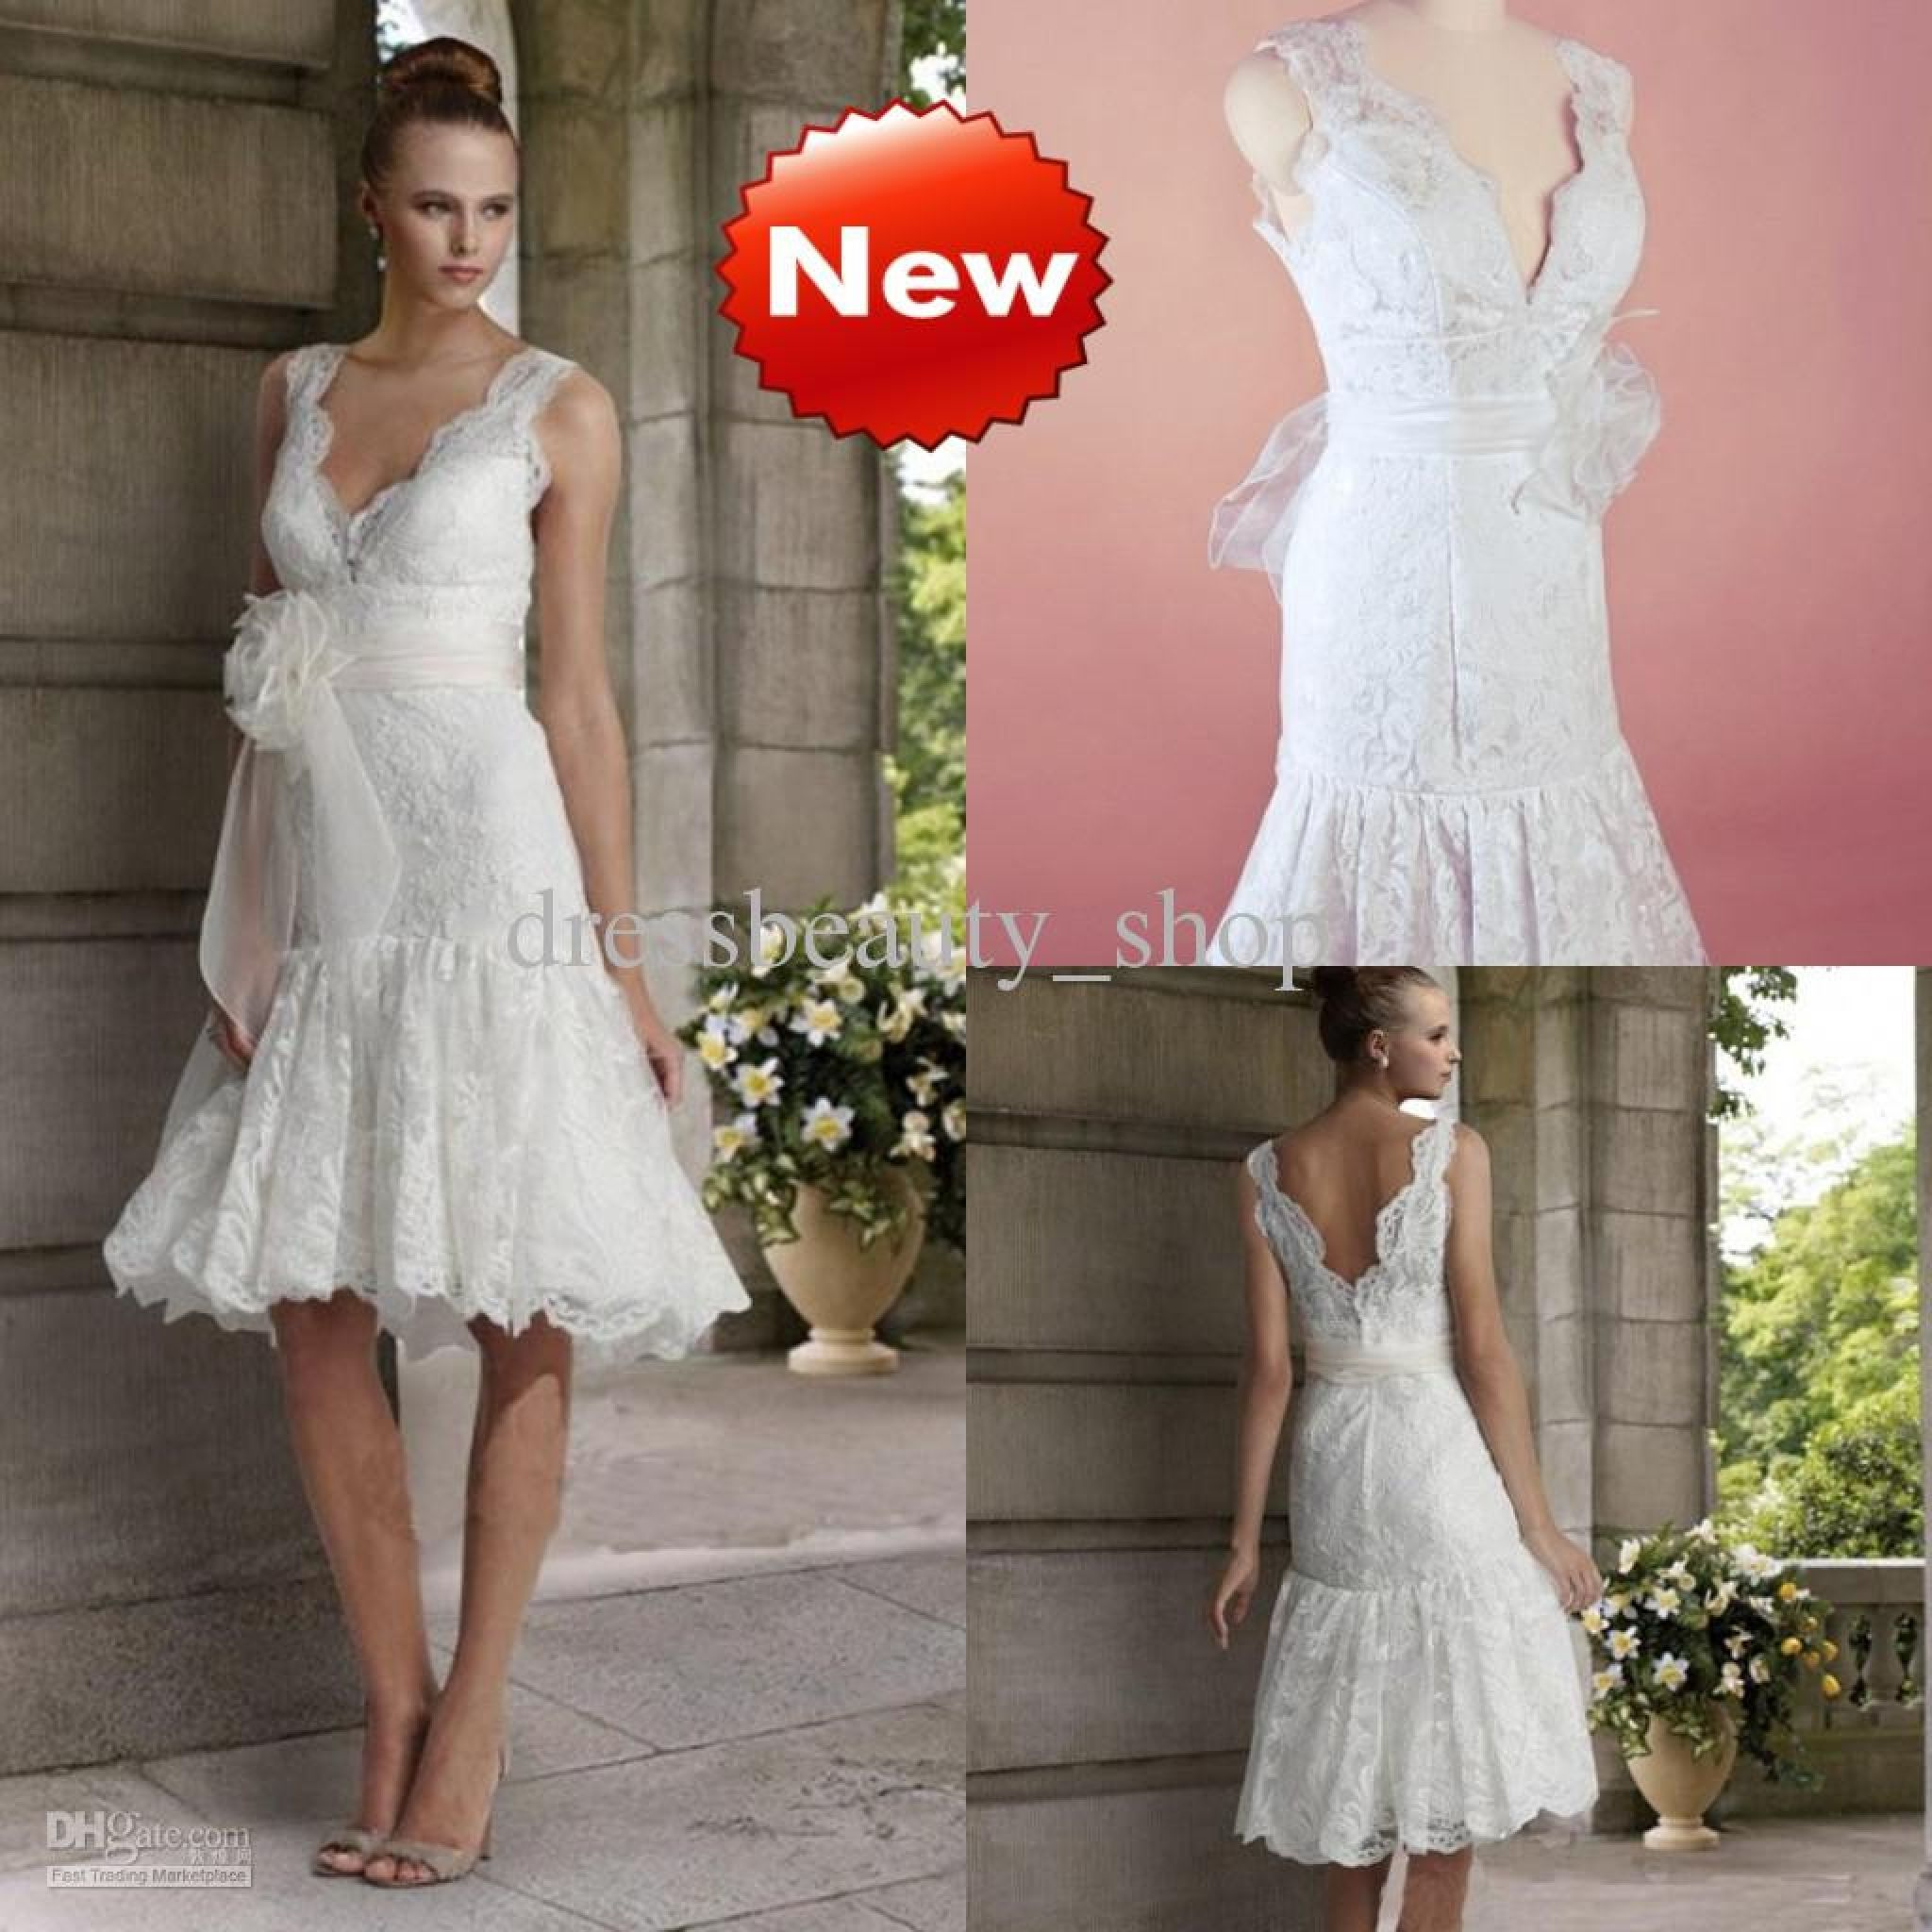 Simple Short Wedding Best Shapewear For Check More At Http